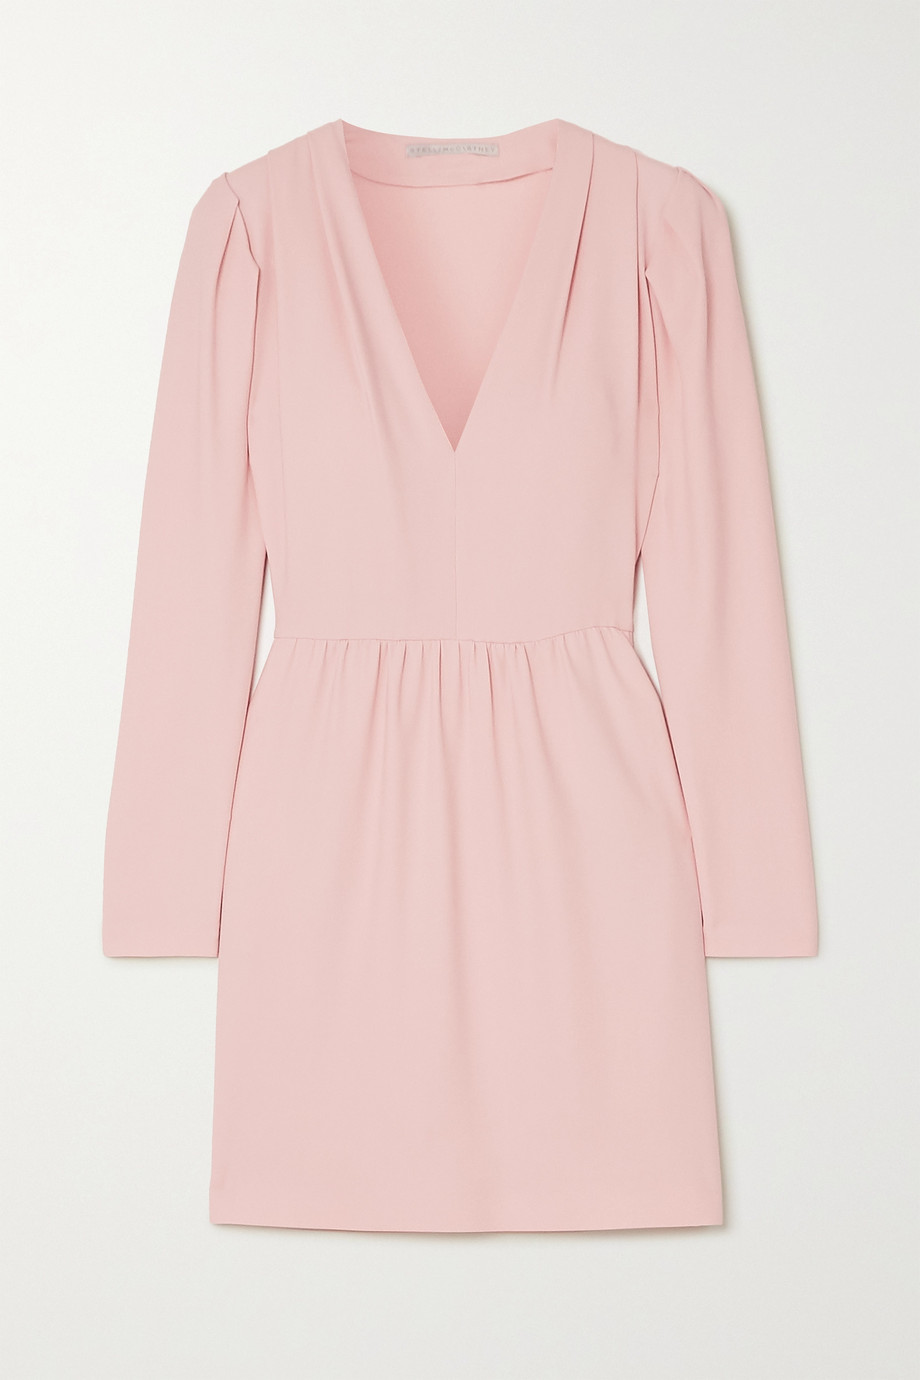 Stella McCartney + NET SUSTAIN stretch-cady mini dress